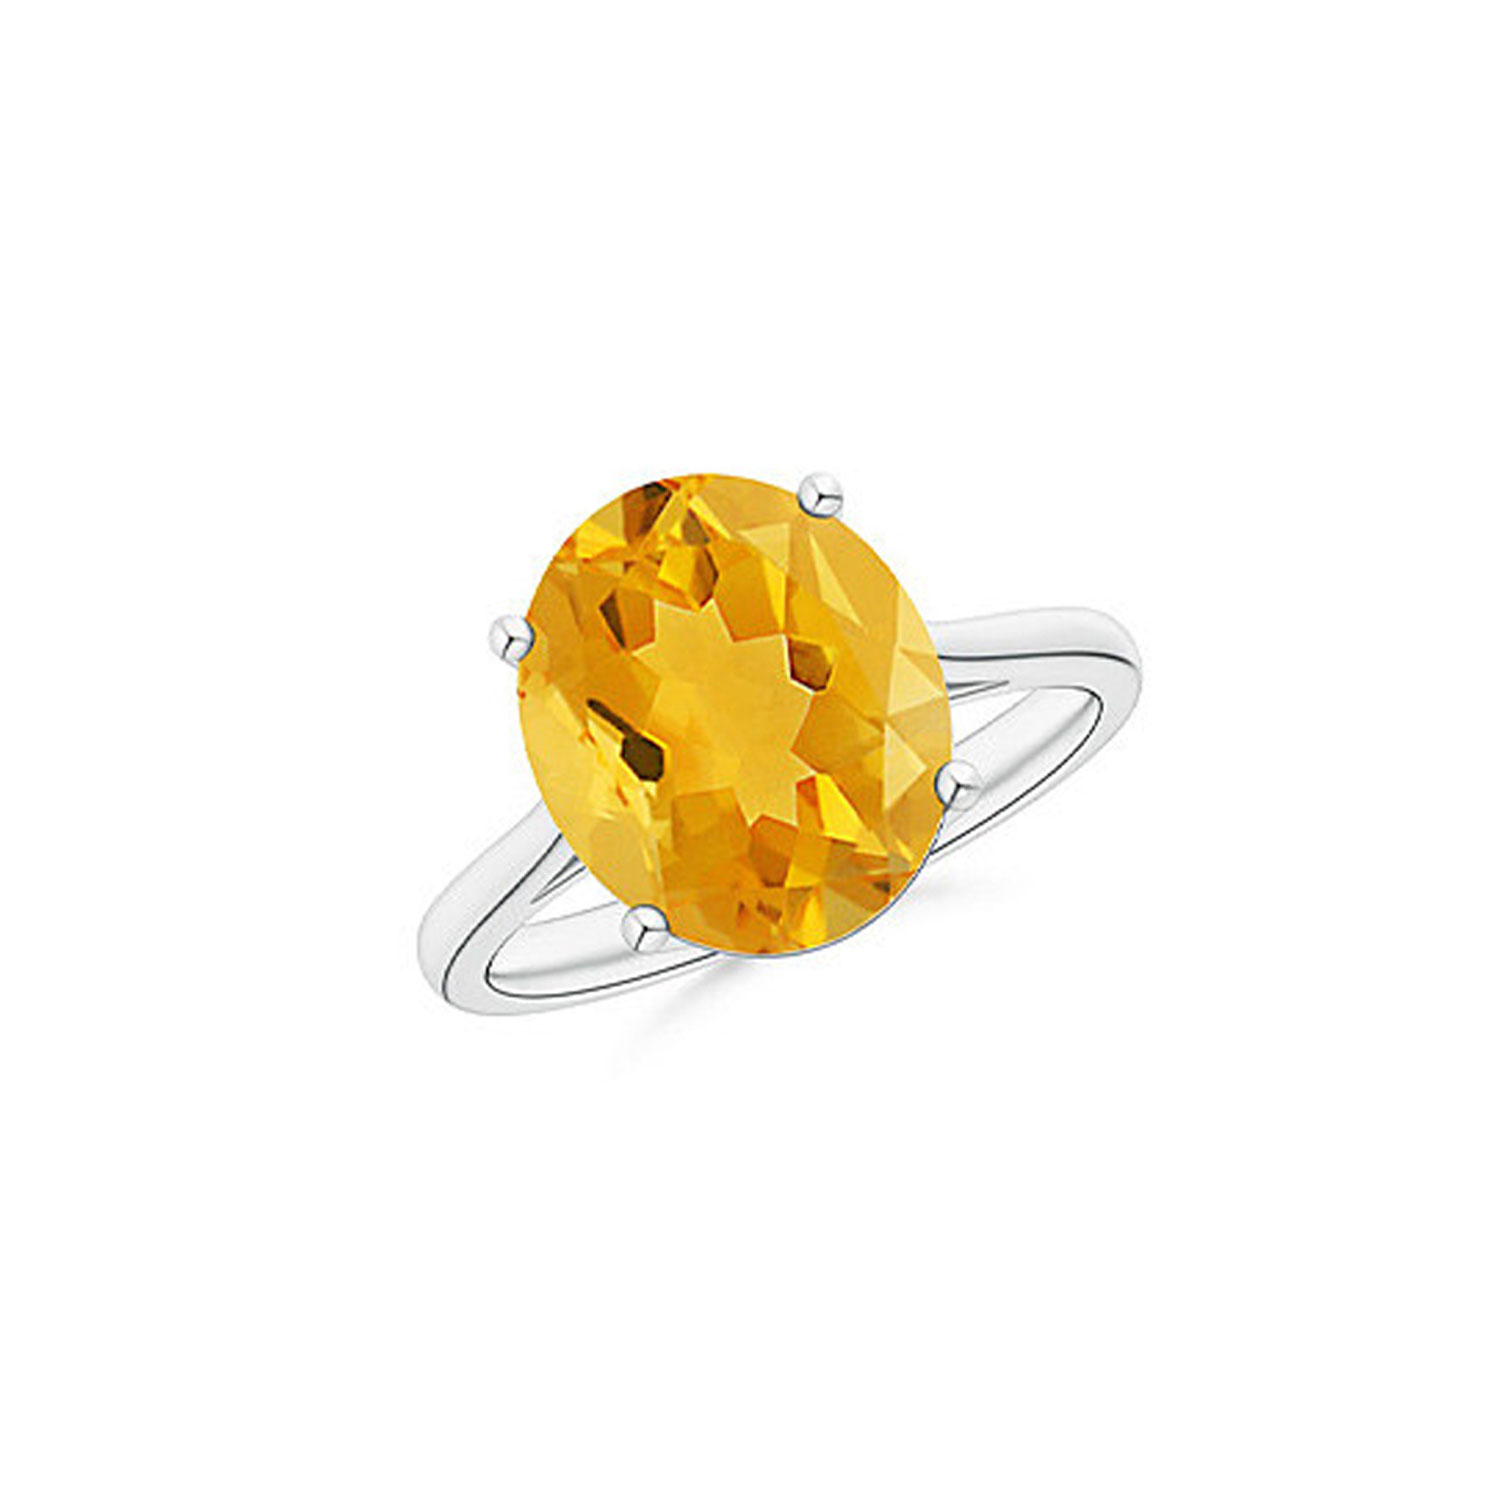 5.00 CTTW Genuine Citrine Gemstone Sterling Silver Ring